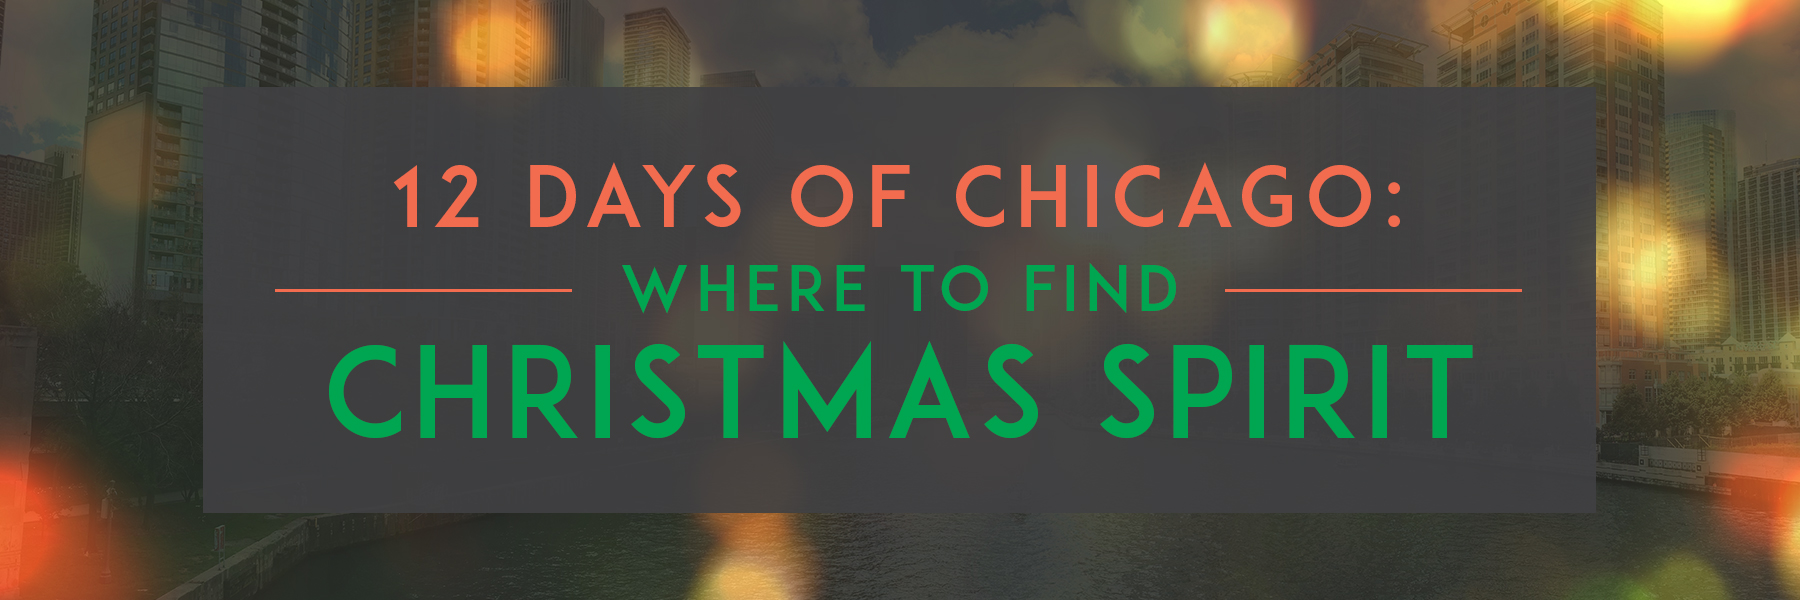 12 Days of Chicago: Where to Find Christmas Spirit